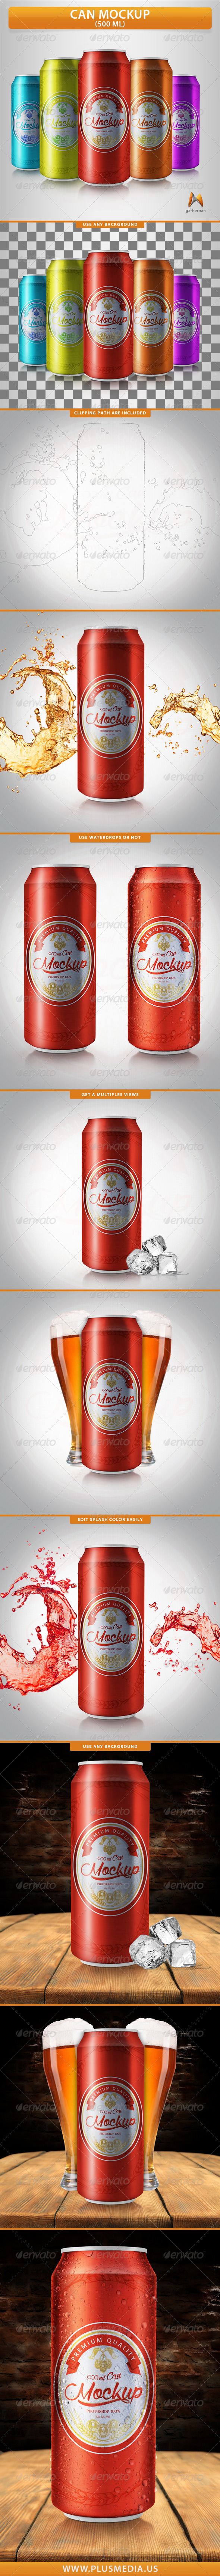 GraphicRiver Can Mockup 500 ml 8511202